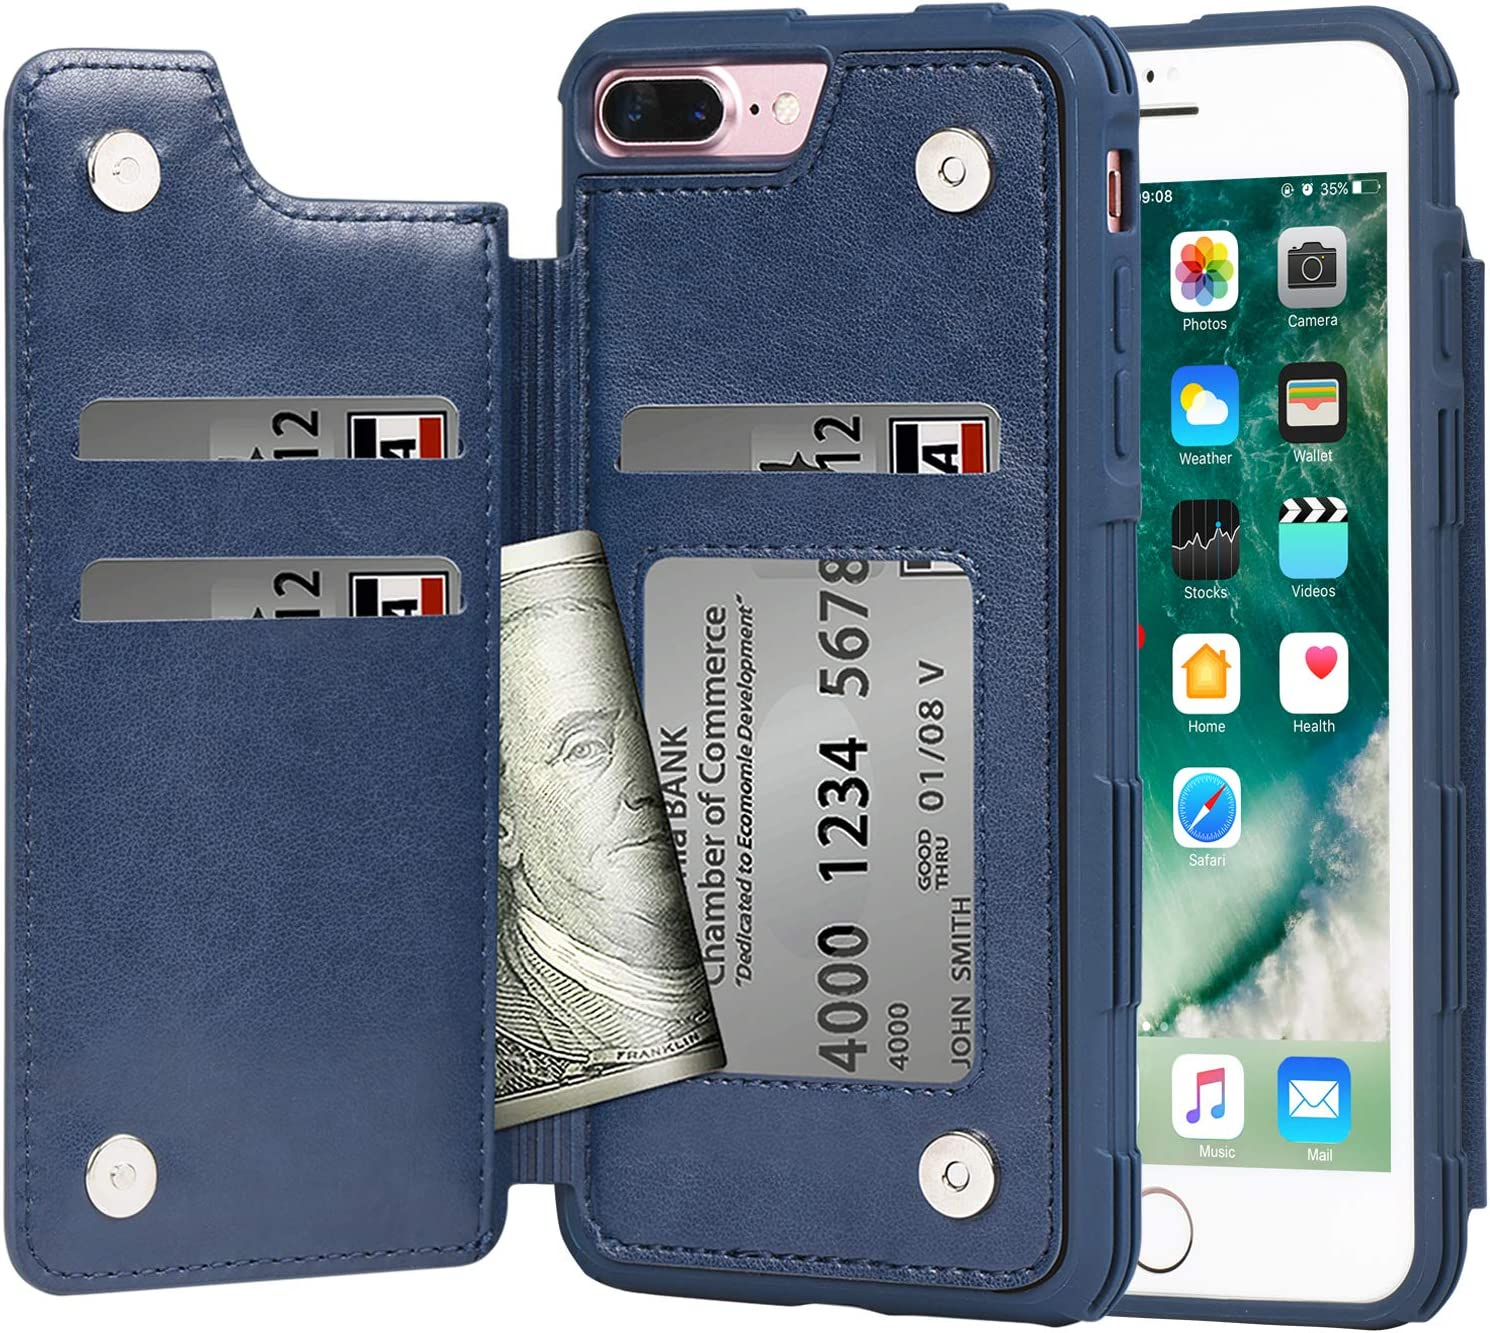 Arae Case for iPhone 7 Plus/iPhone 8 Plus - Wallet Case with PU Leather Card Pockets [Shockproof] Back Flip Cover for iPhone 7 Plus / 8 Plus 5.5 inch (Blue)